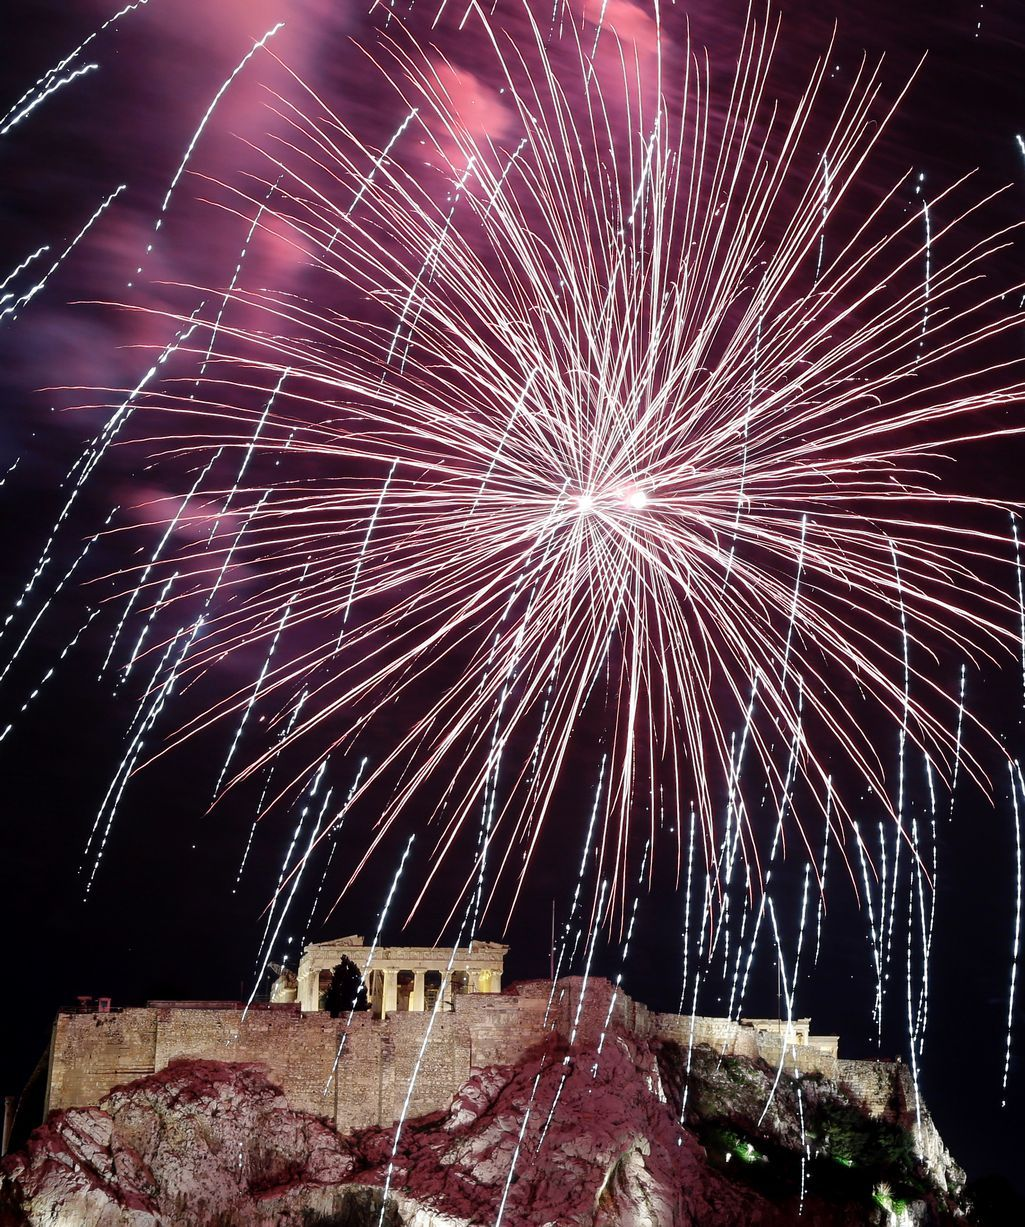 Fireworks over the Acropolis, New Year's Eve 2012/13 New